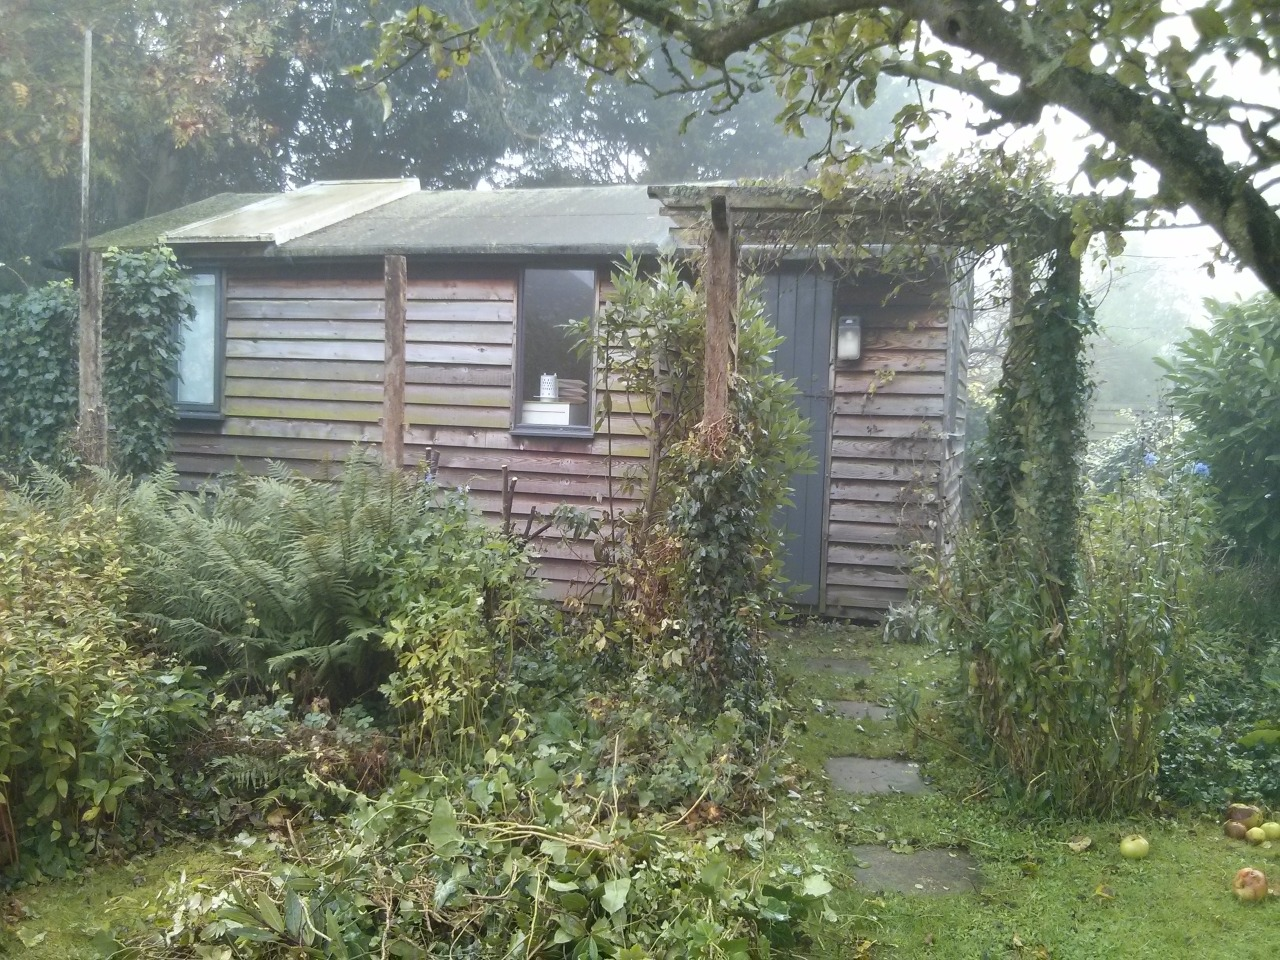 I've been taking down a trellis that has been up for about 20 years and hid my old studio from the rest of the garden. We are opening up the space and thinking how we can use the old studio… it needs a creosote!